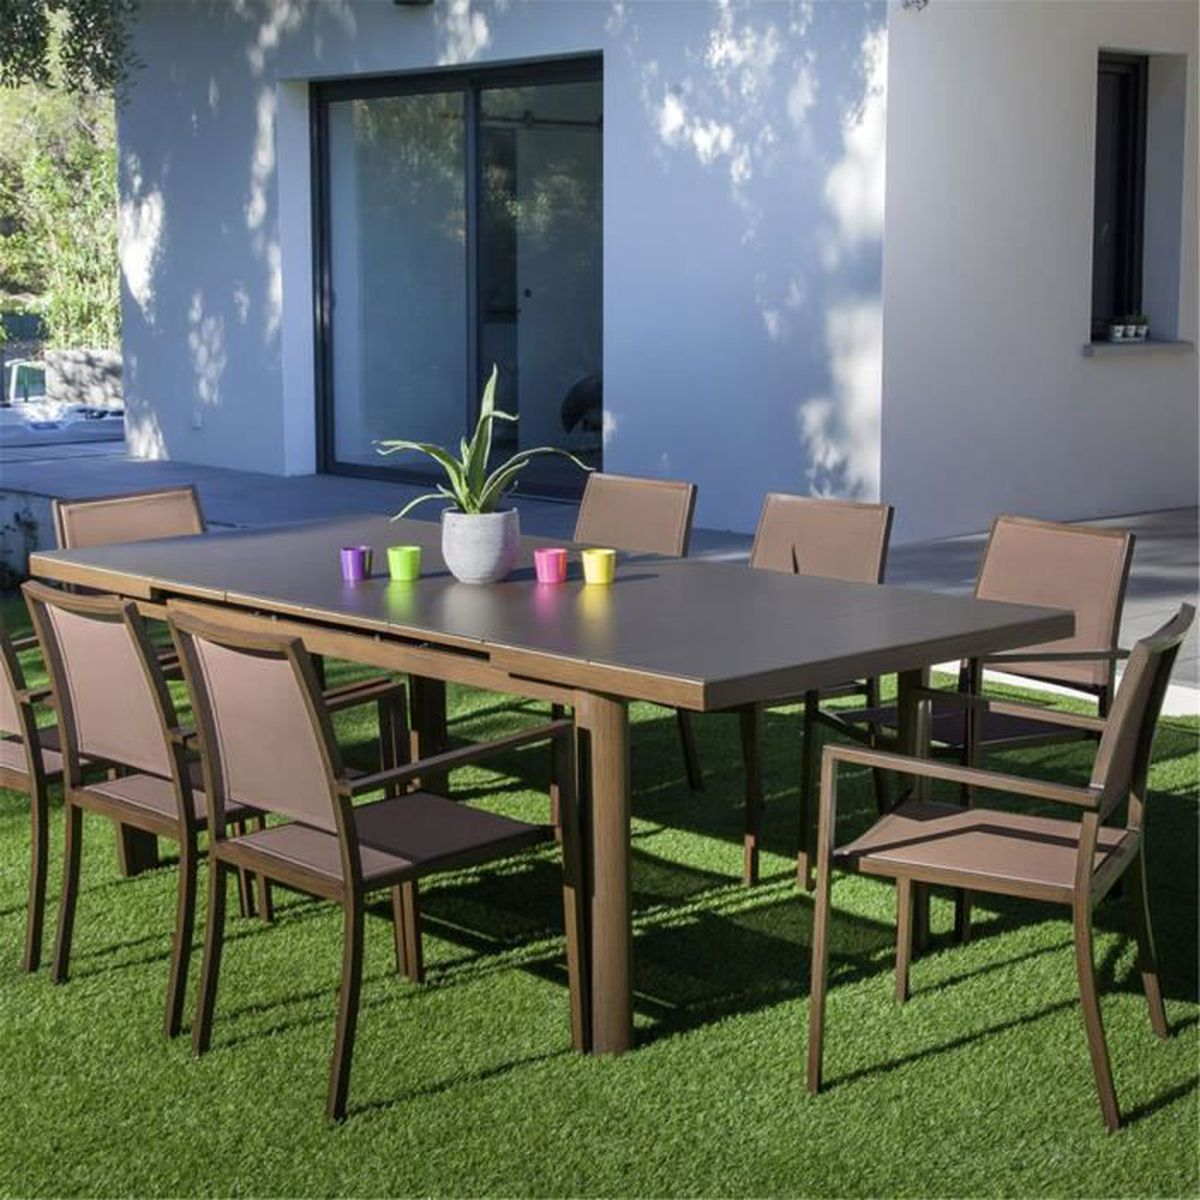 Jacinthe Table de jardin extensible marron en verre texturé (6 à 8 ...